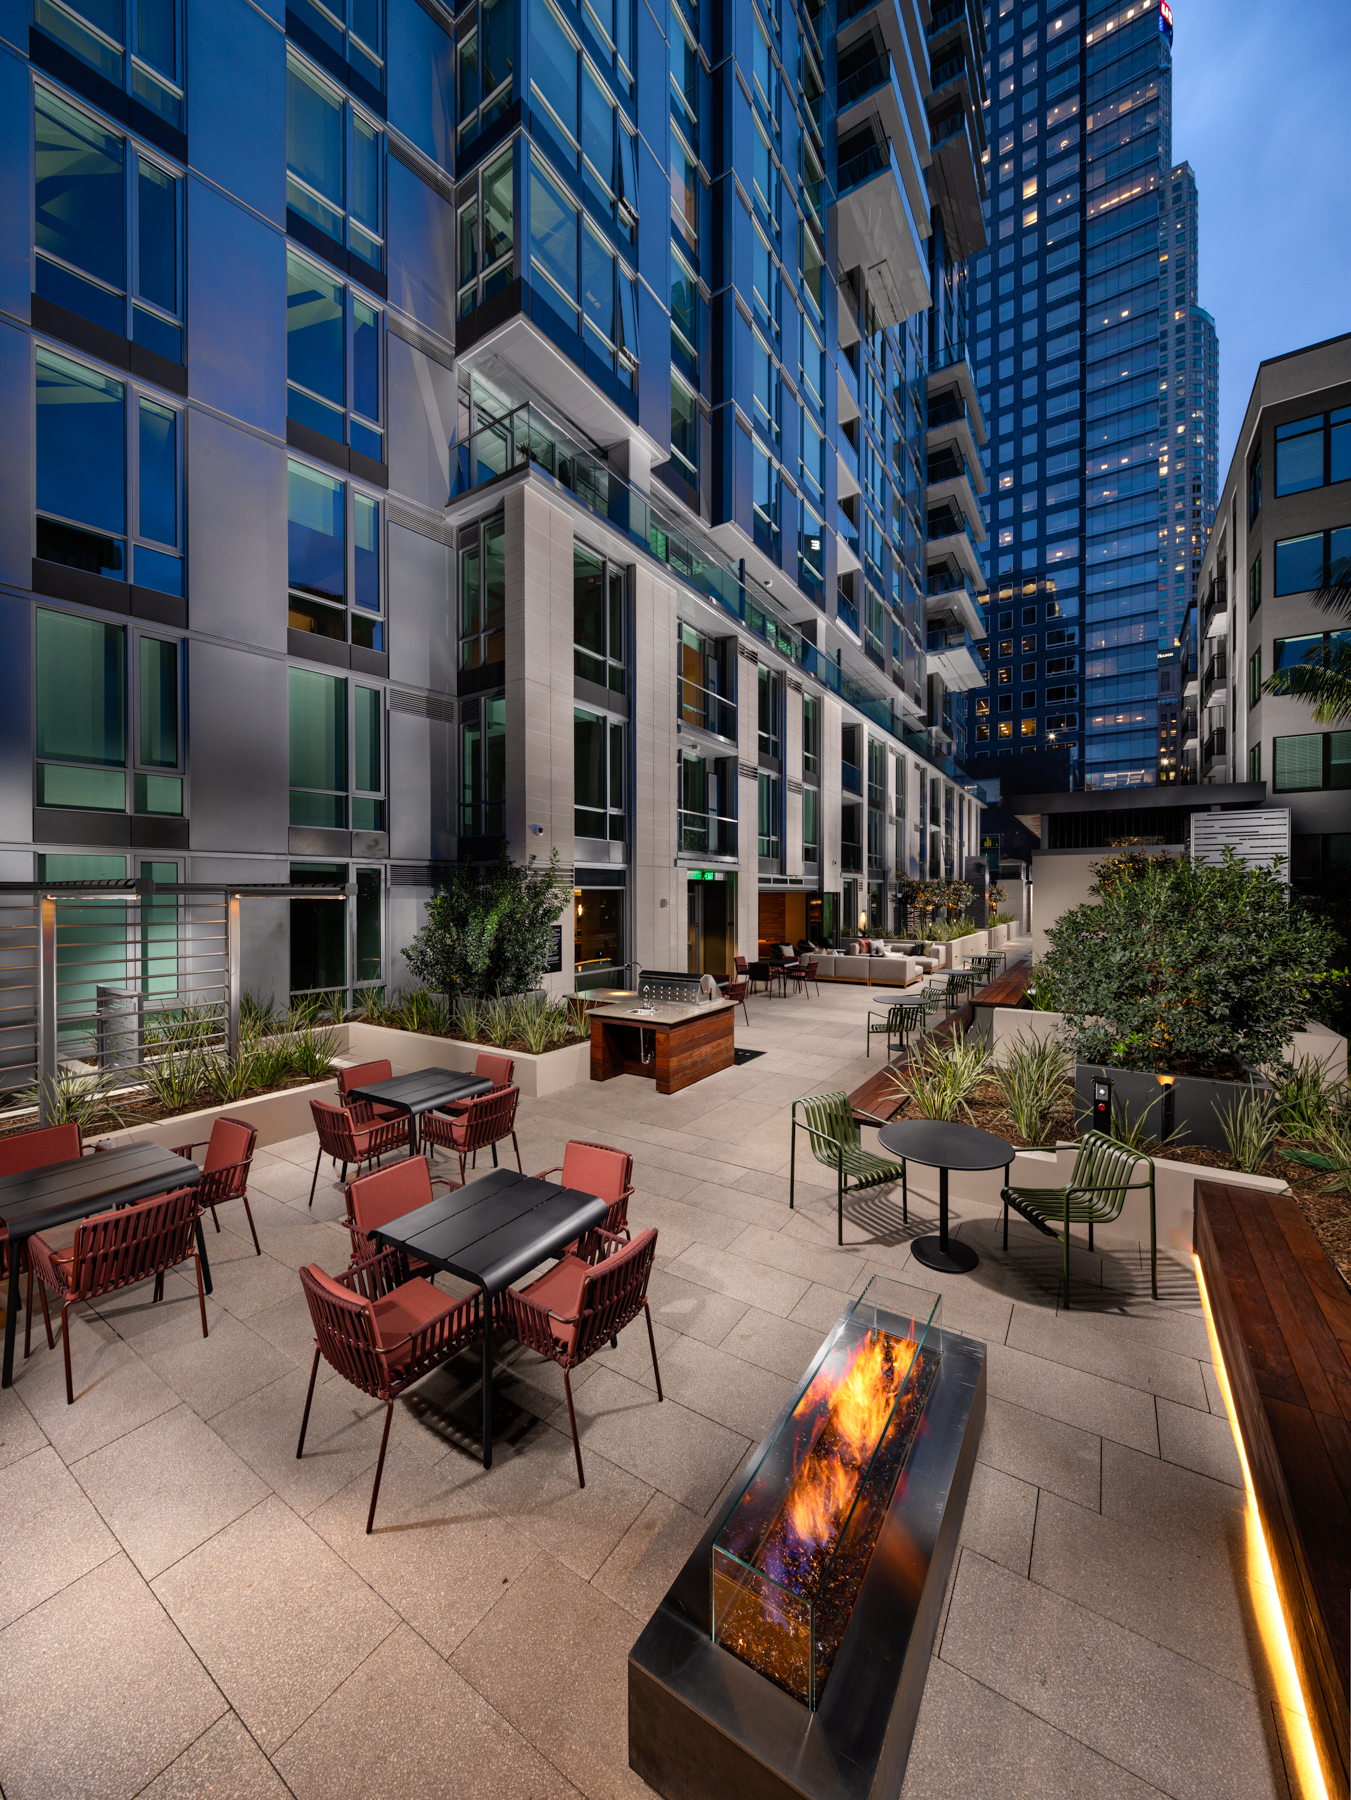 Luxury Apartments in Downtown Los Angeles, CA - Park Fifth Tower Outdoor Patio Lounge with Ample Seating, Fire Pit, and BBQ Grilling Area